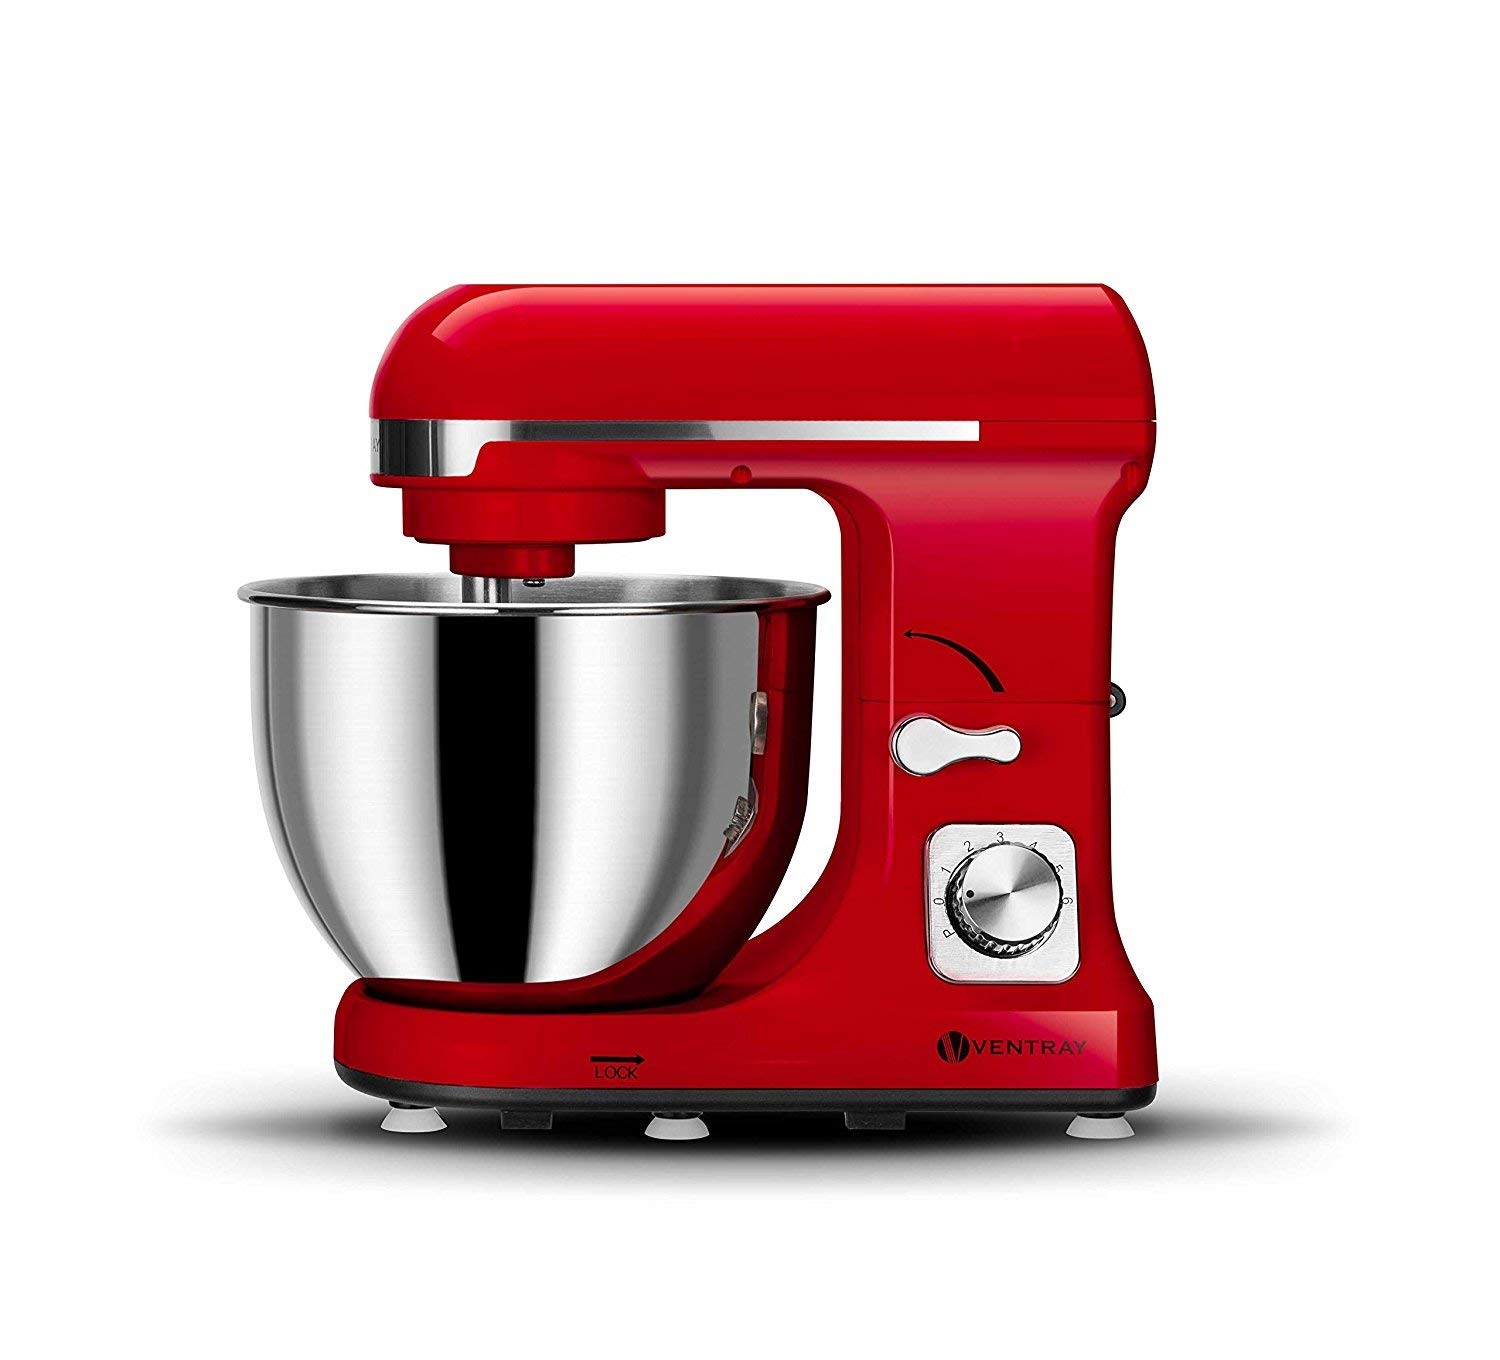 Ventray MK37 Professional Grade 4.5-Quart 6-Speed Stand Mixer with Pouring Shield - Lava Red